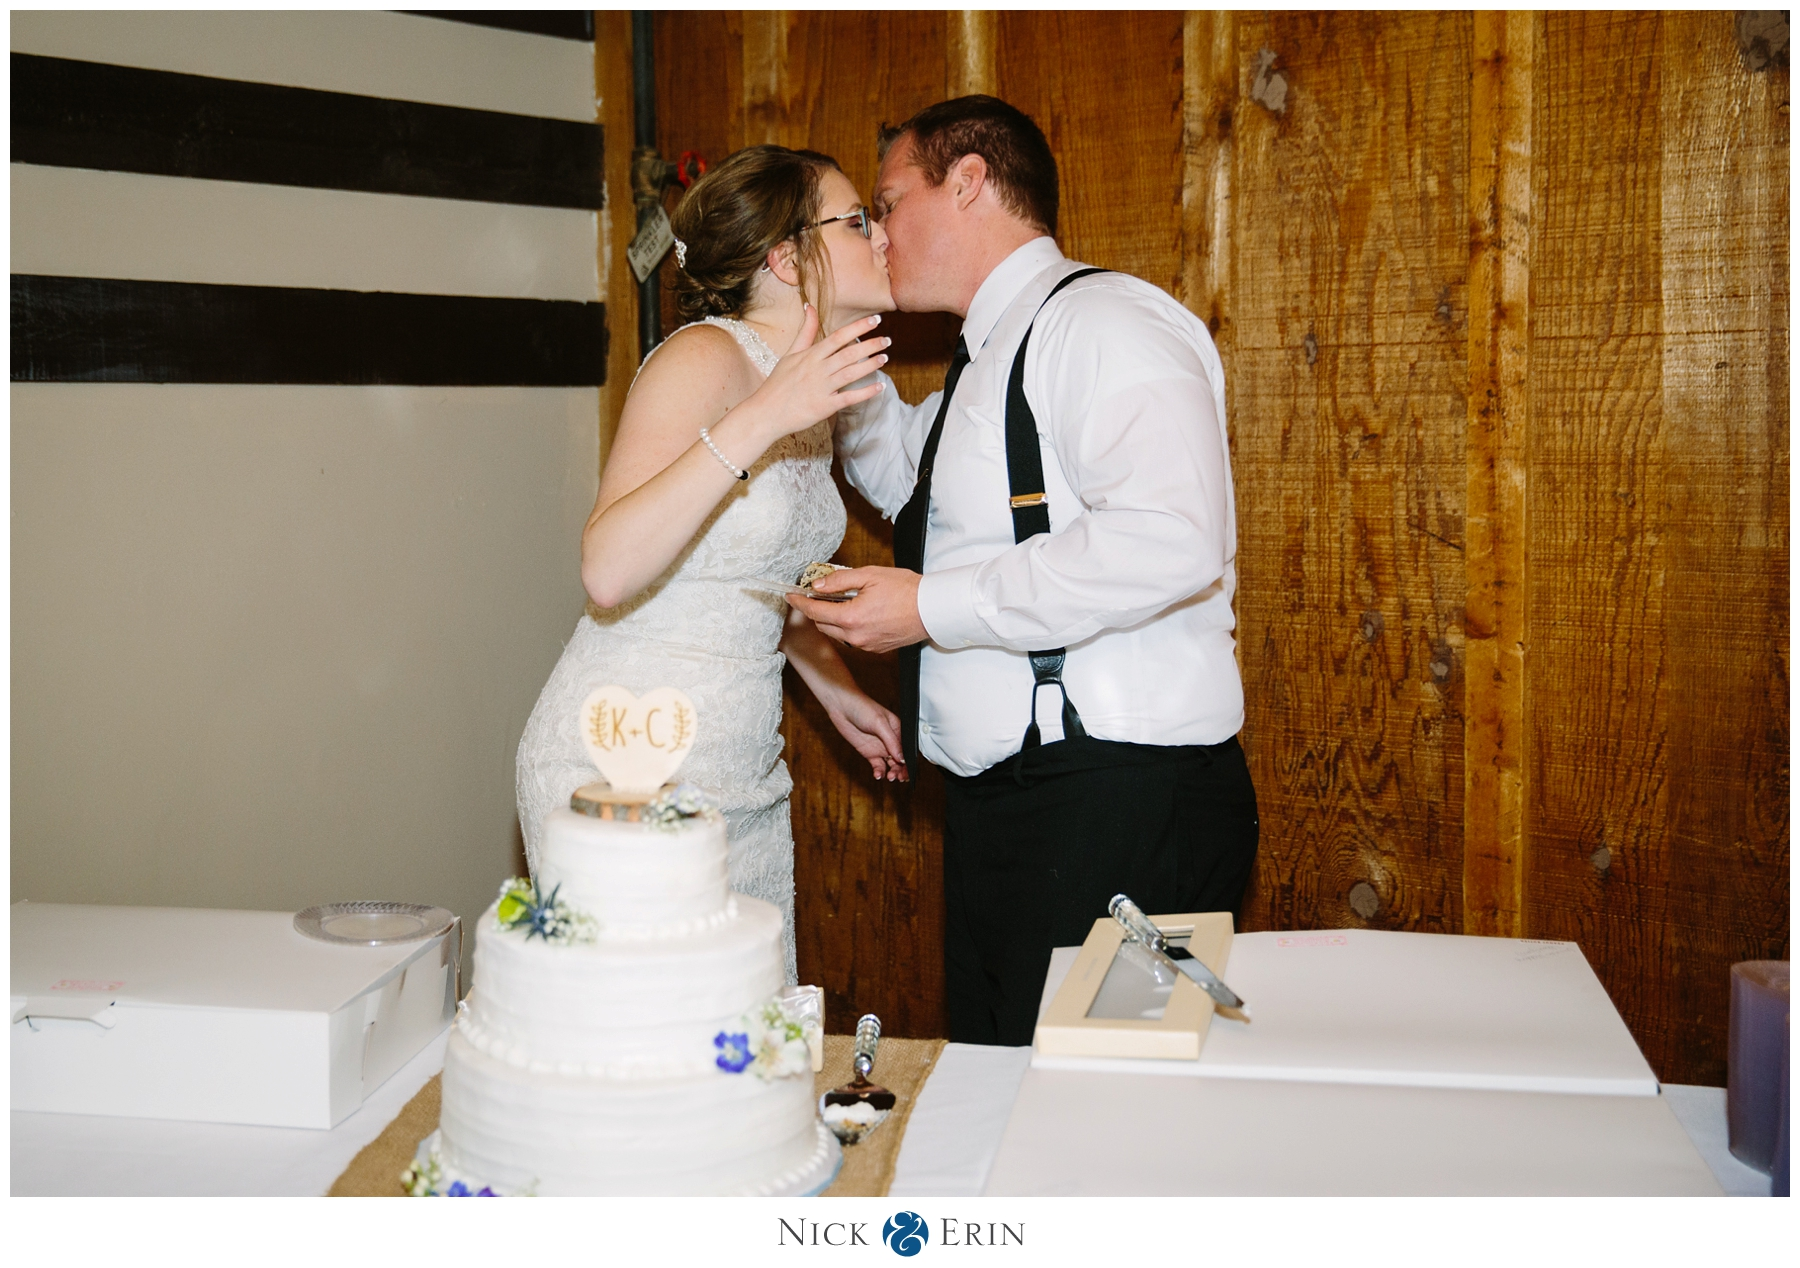 donner_photography_iowa-wedding_katie-chris_0053